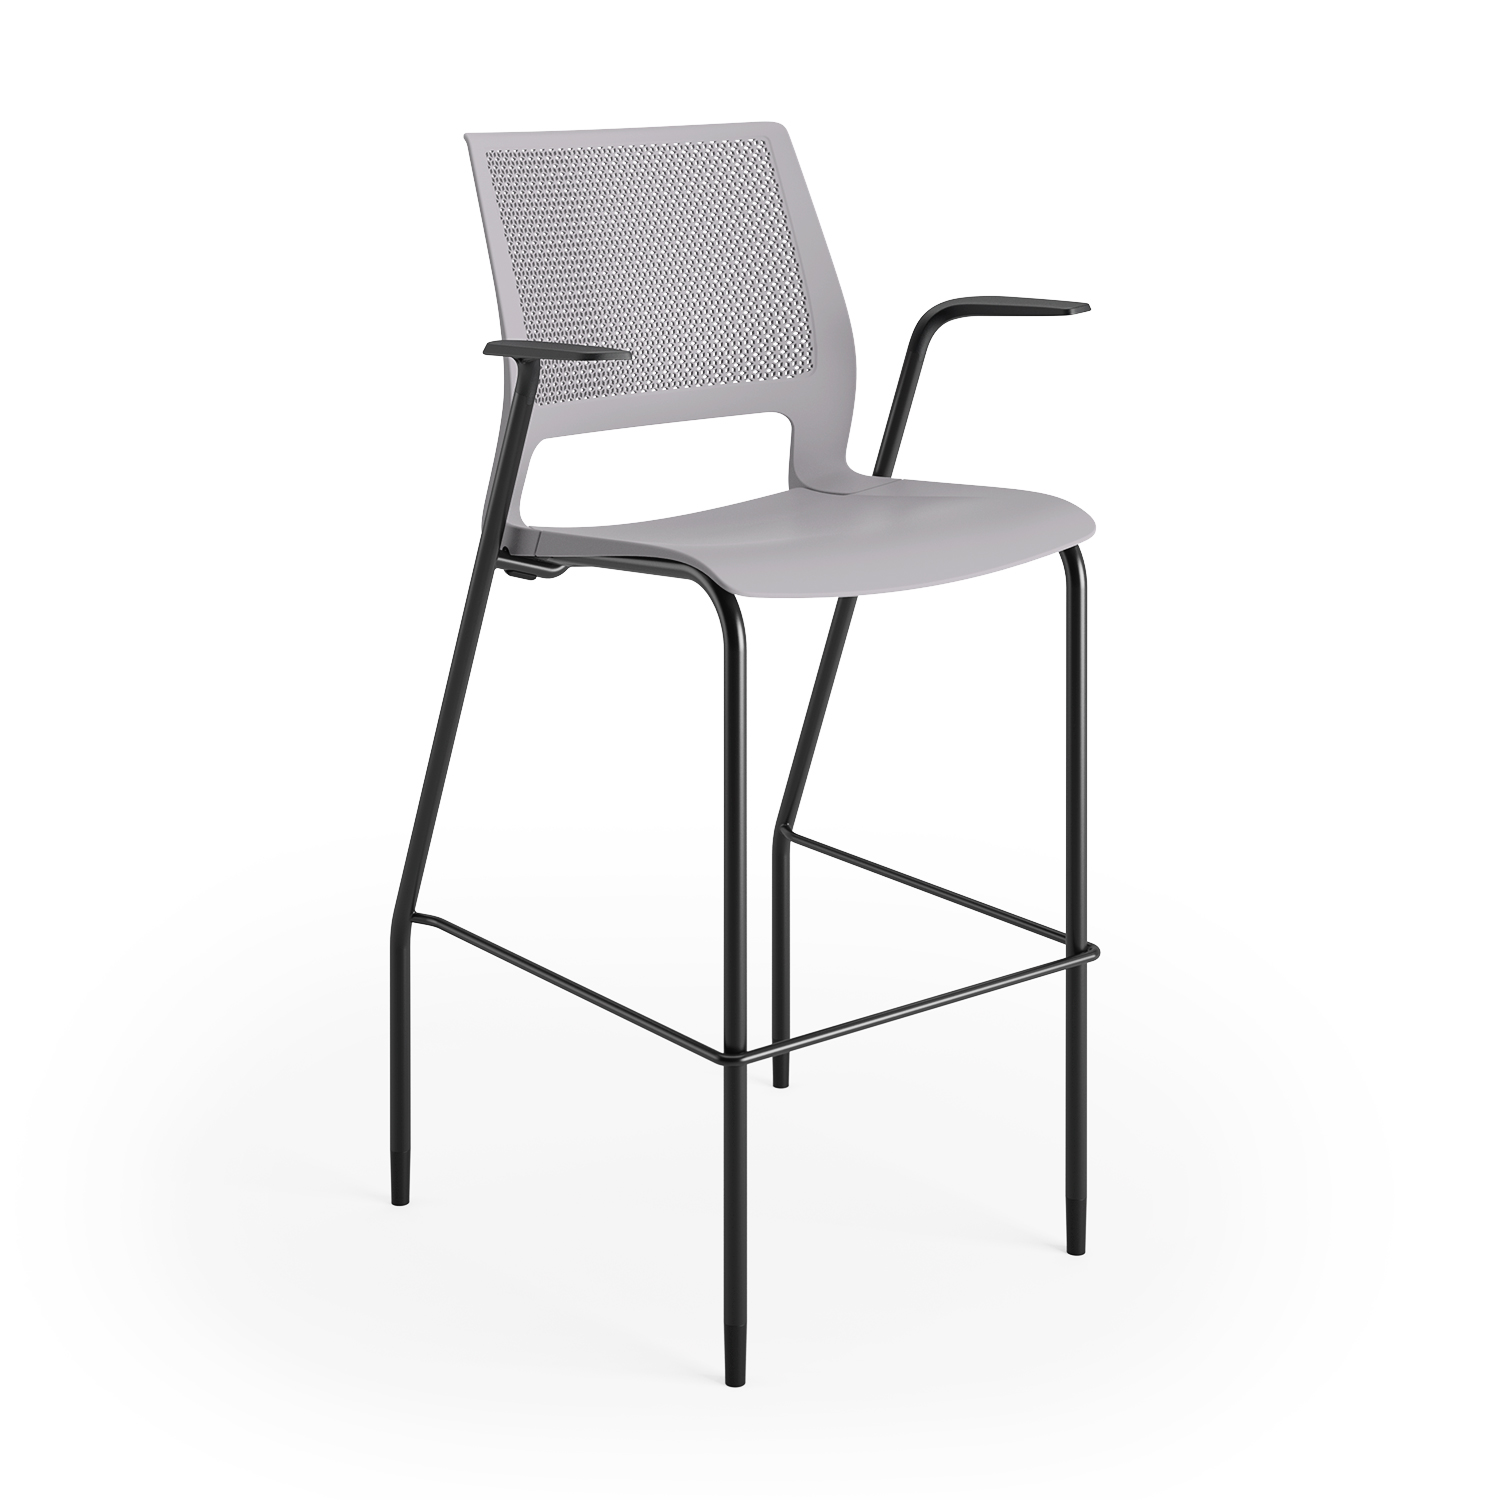 lumin stool sterling shell black frame arms 3qtr front